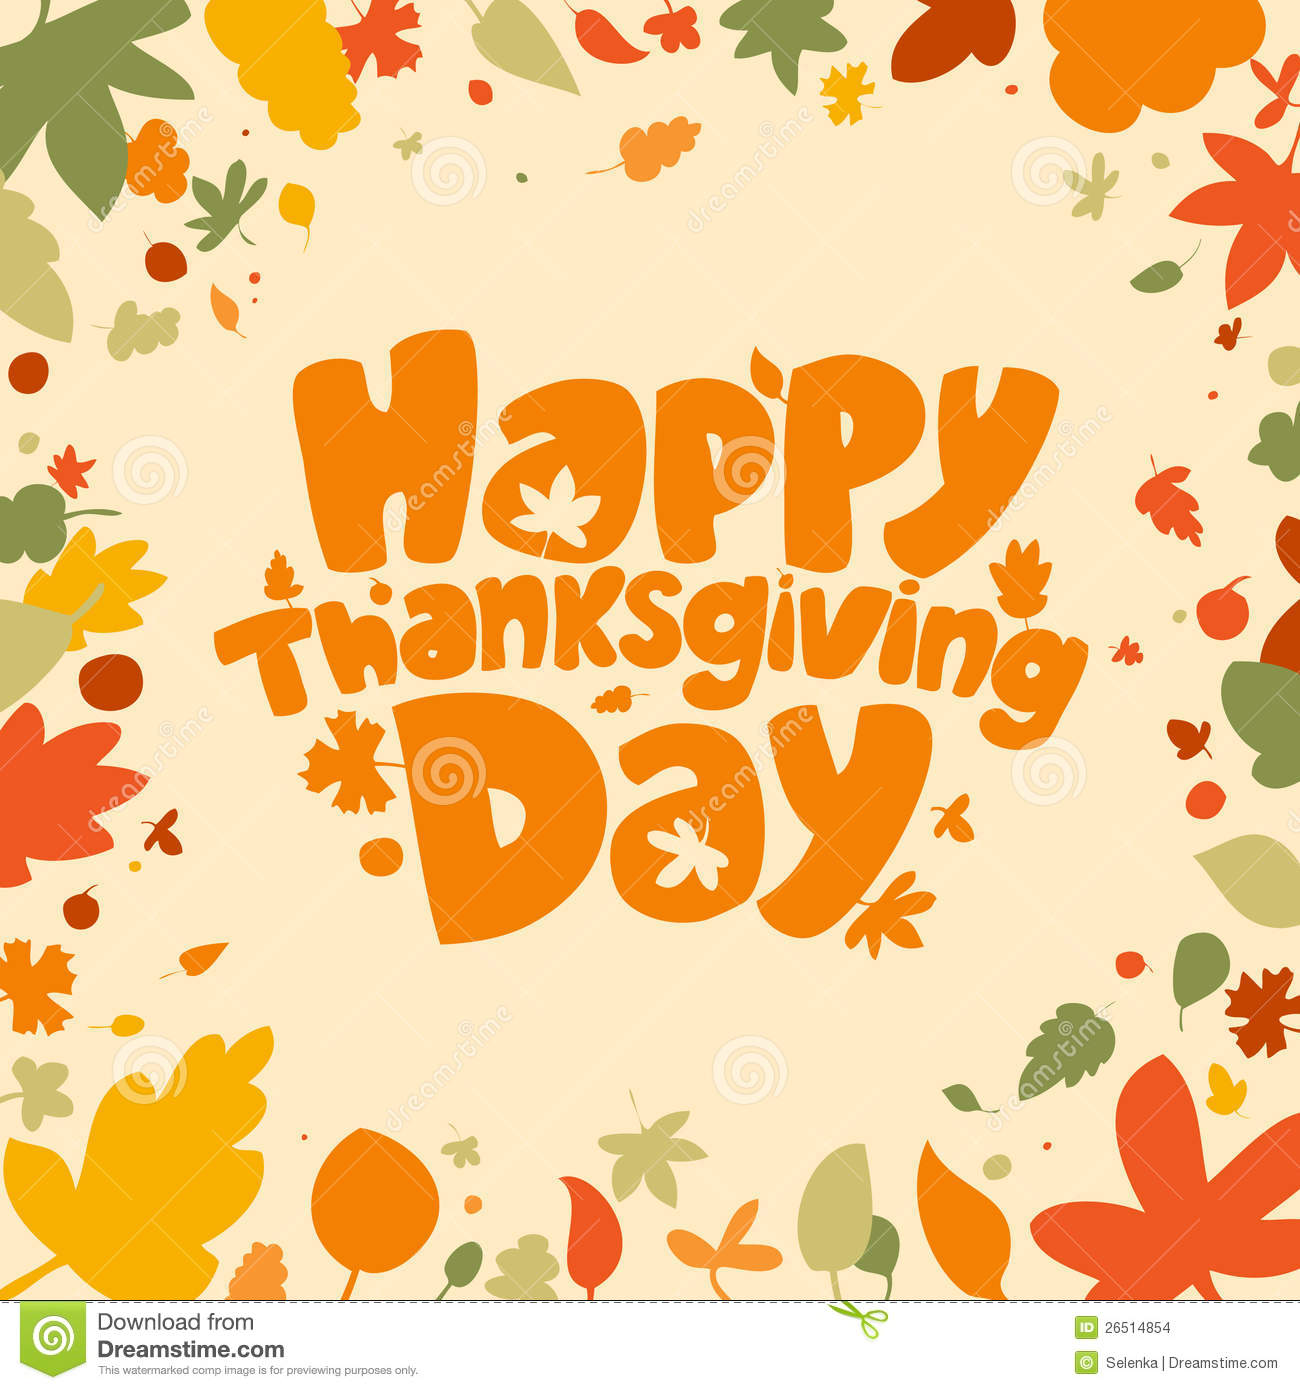 thanksgiving day on november 25